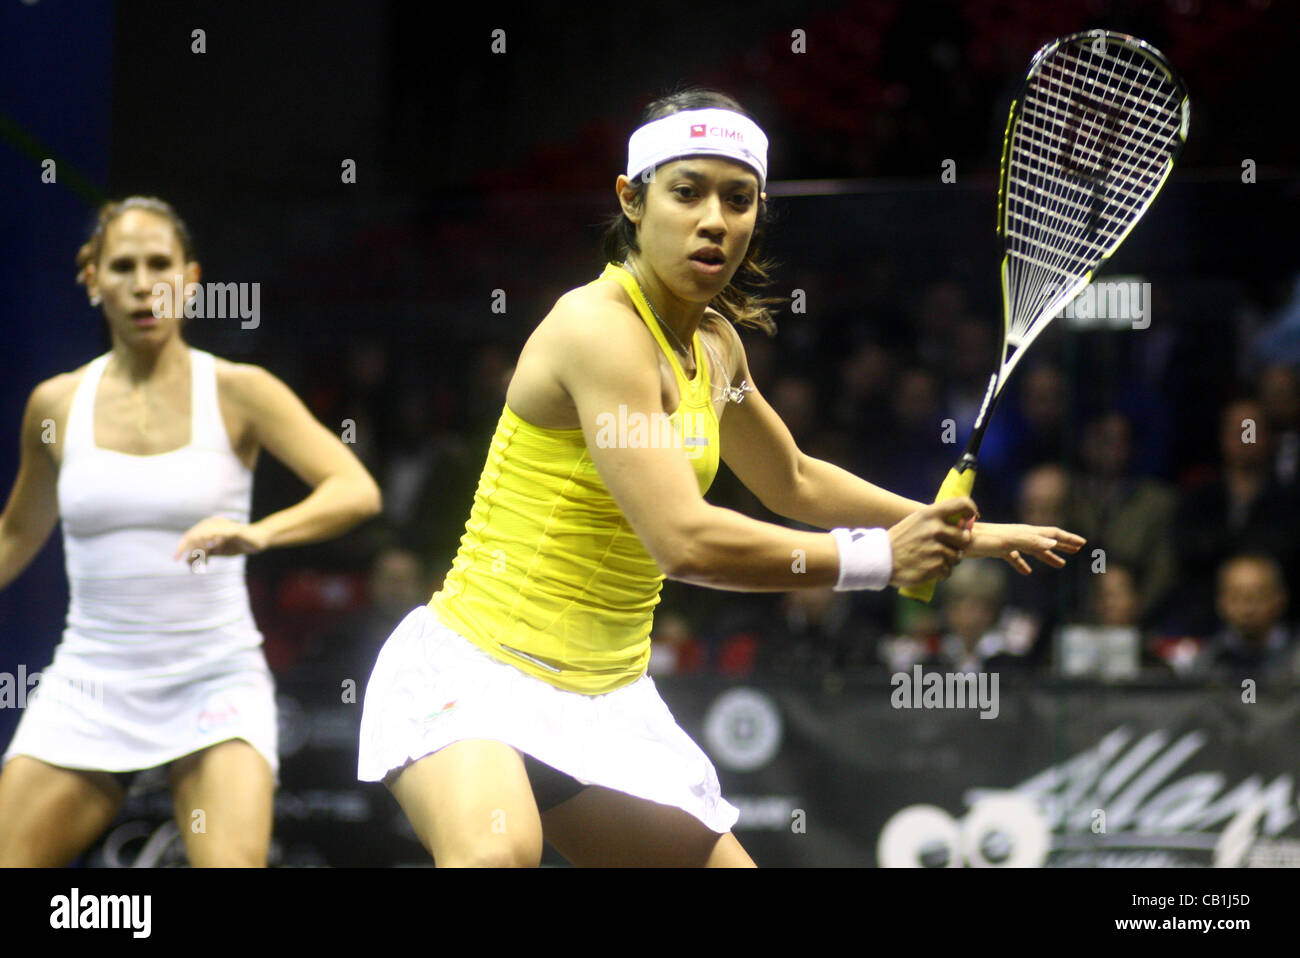 17.05.2012 The O2, London, England. Nicol David (MAS) in action against Samantha Teran (MEX) during their second - Stock Image